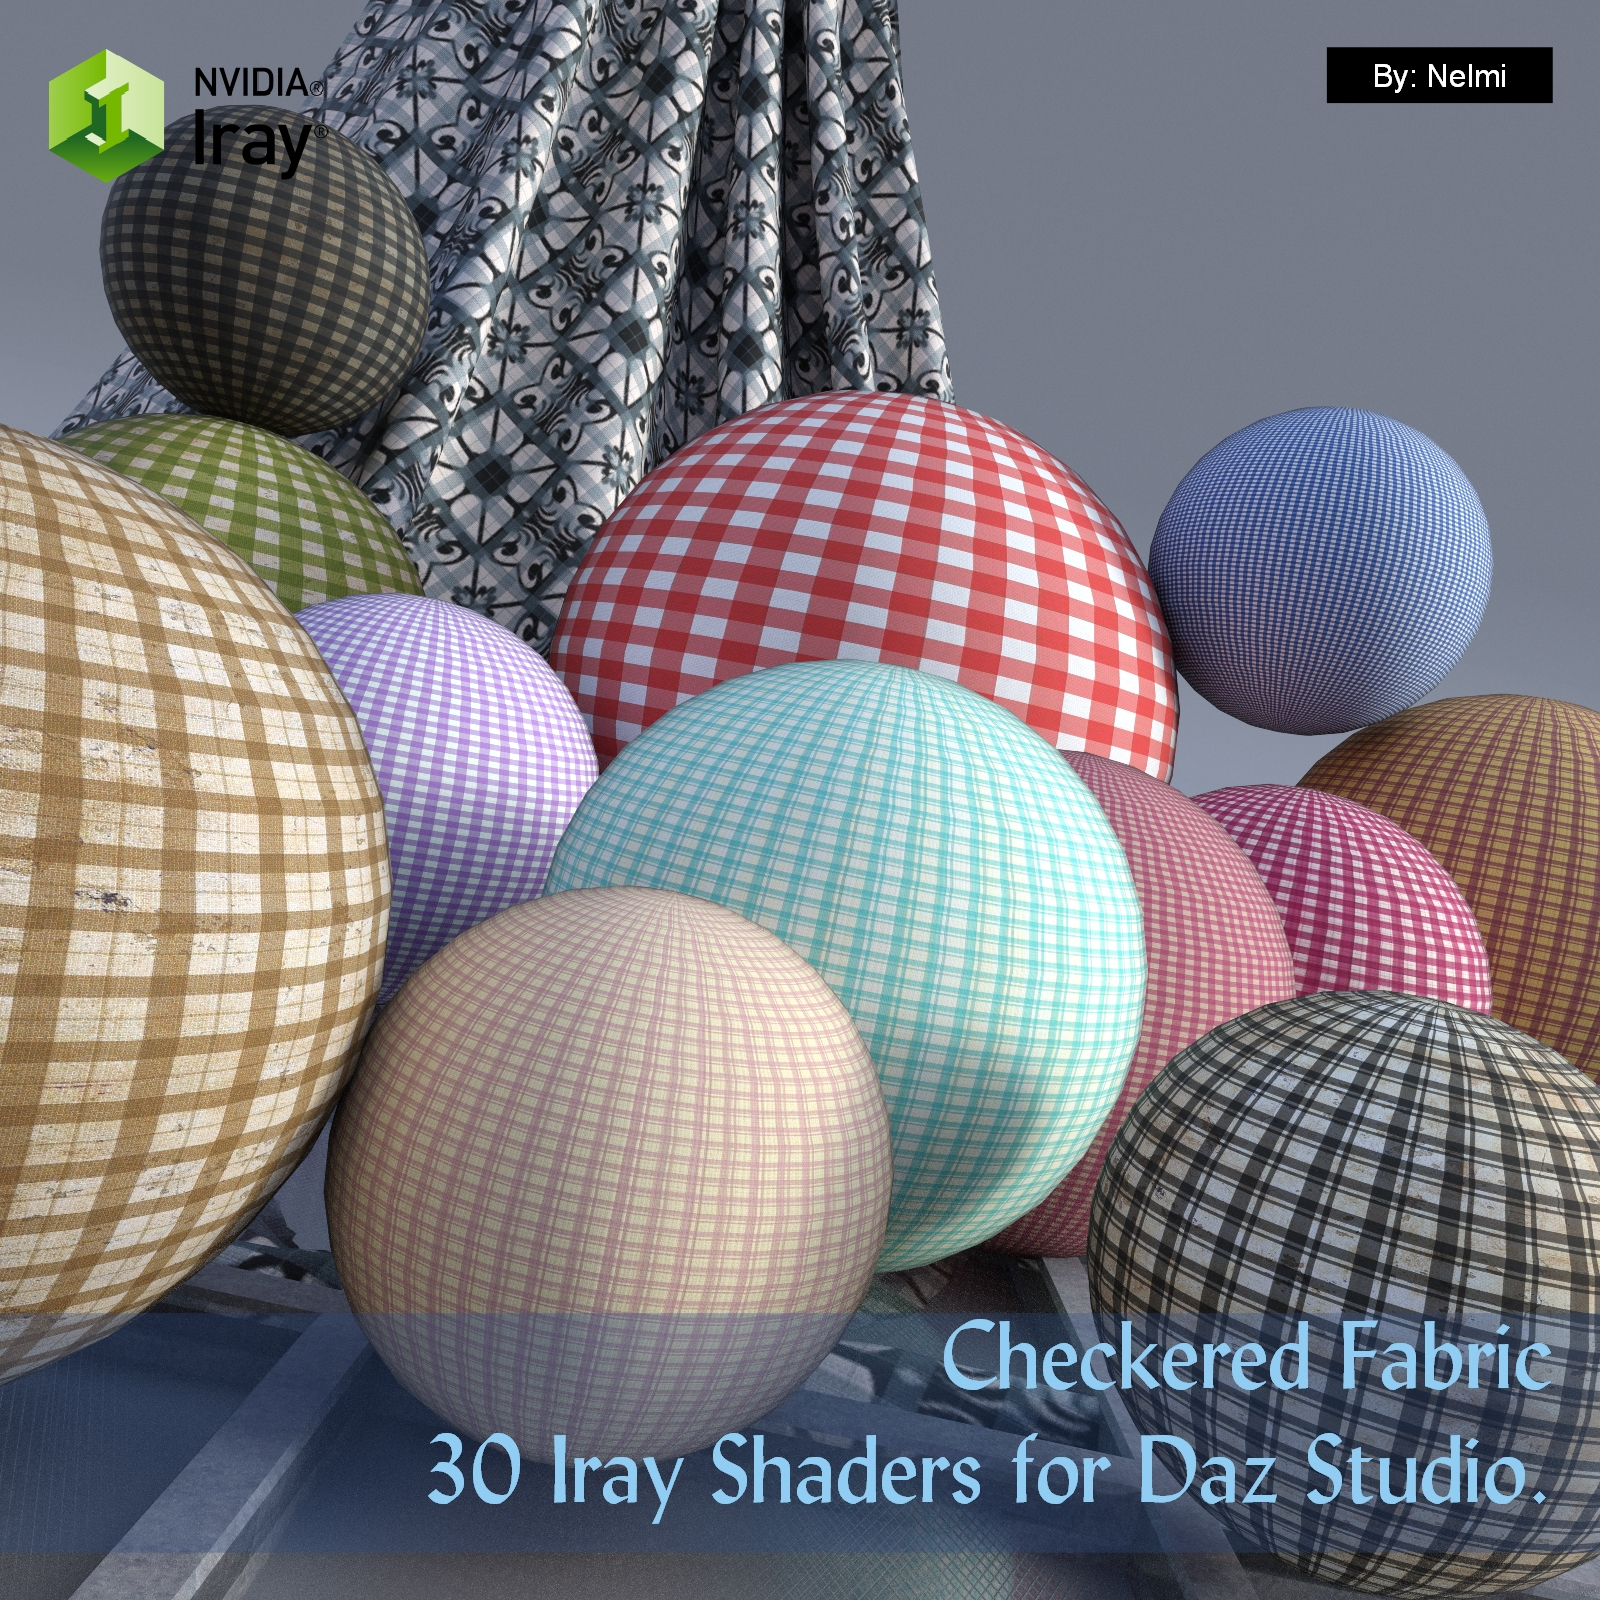 Checkered Fabric - 30 Iray Shaders for Daz Studio